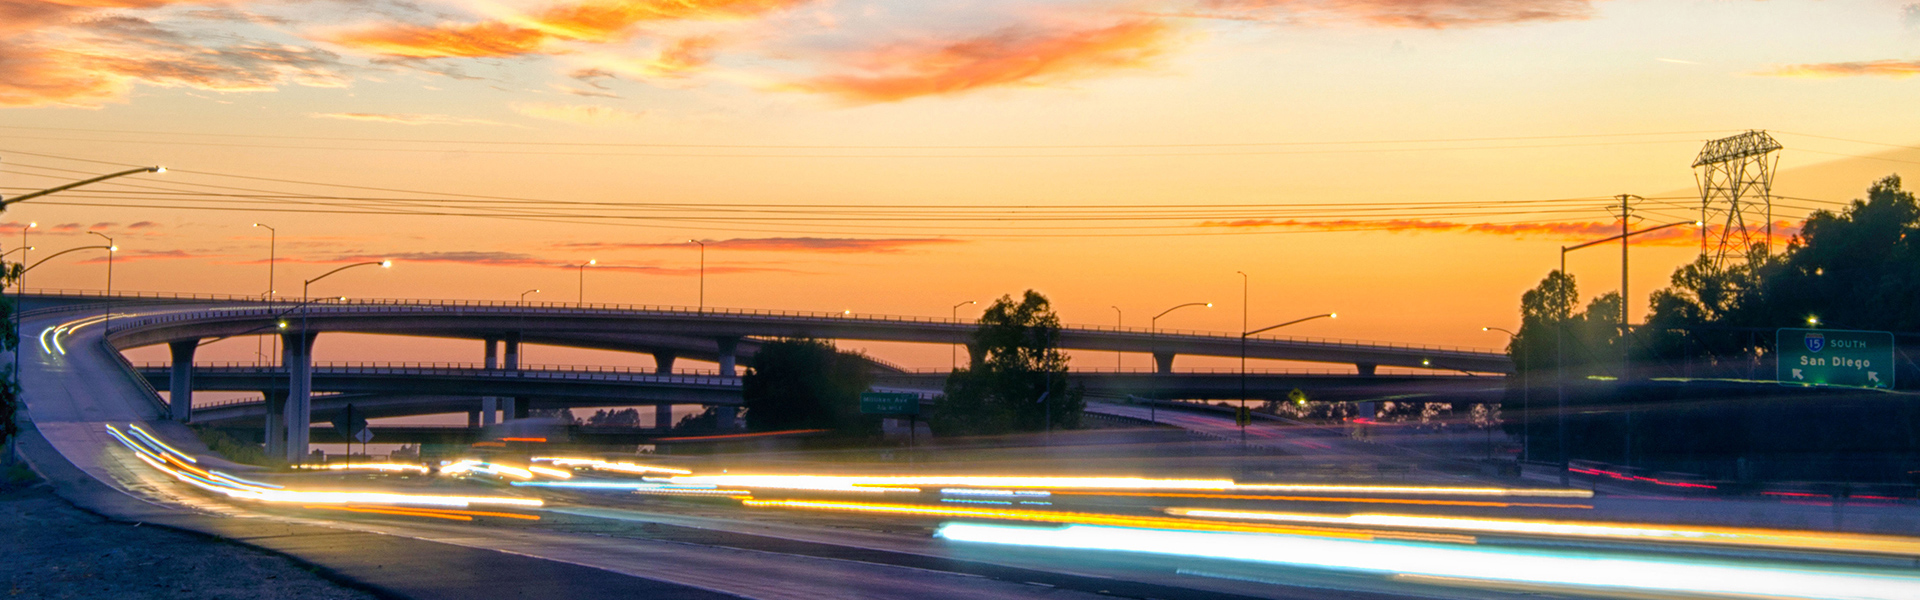 Highway photo during sunset